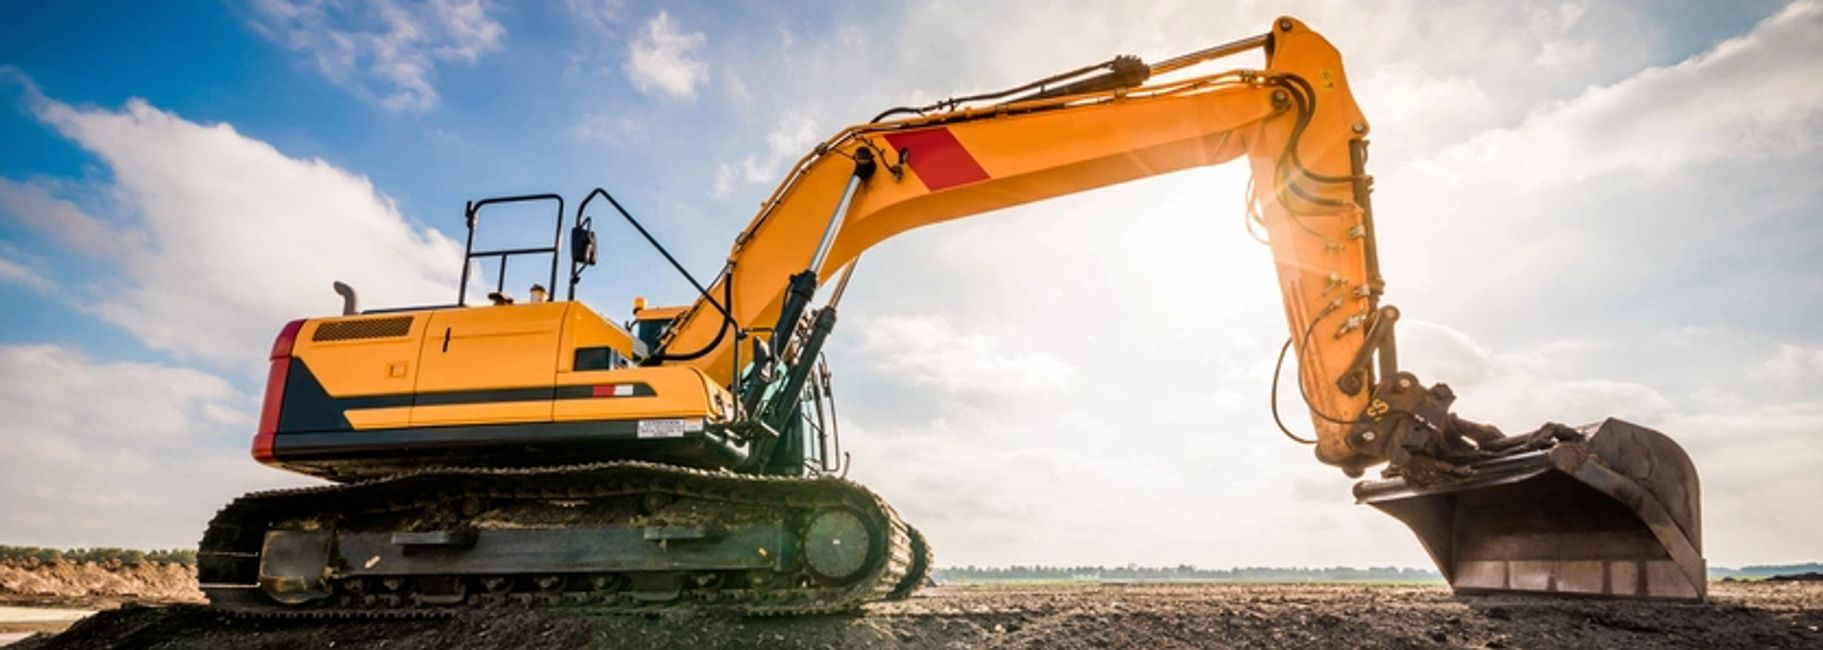 Excavator Operator Safety Training Heavy Equipment Training CAT Excavator Training John Deere